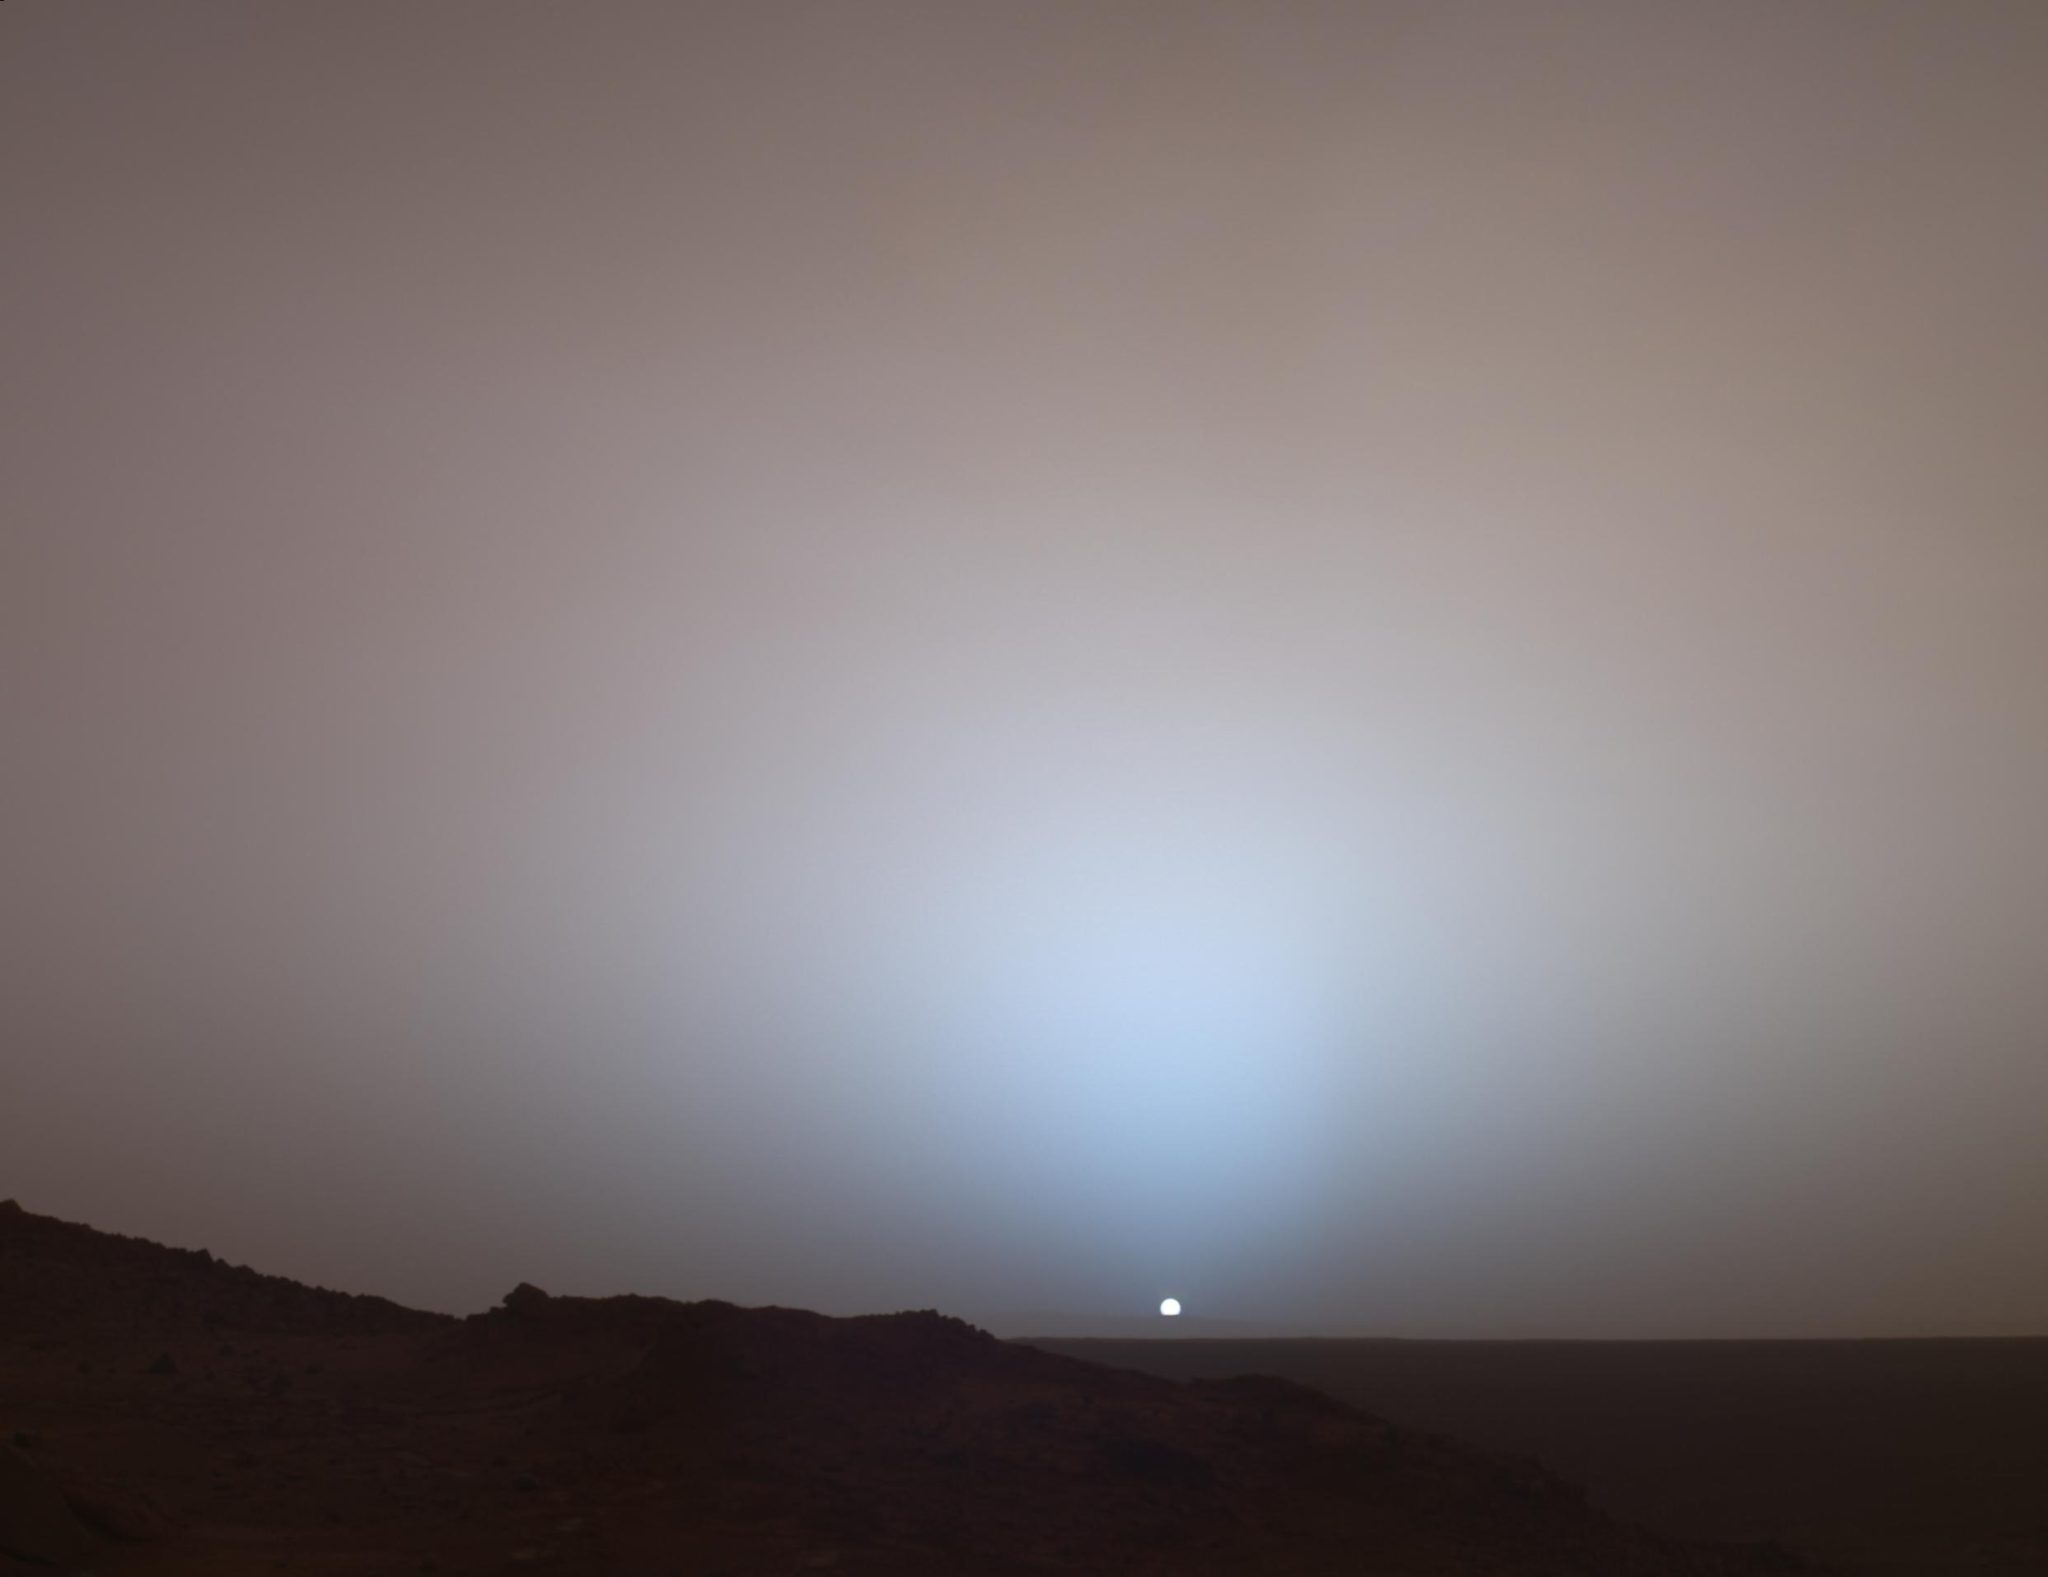 Sunset on Mars, source [NASA](https://www.nasa.gov/multimedia/imagegallery/image_feature_347.html) and Astronomy Picture of the Day.